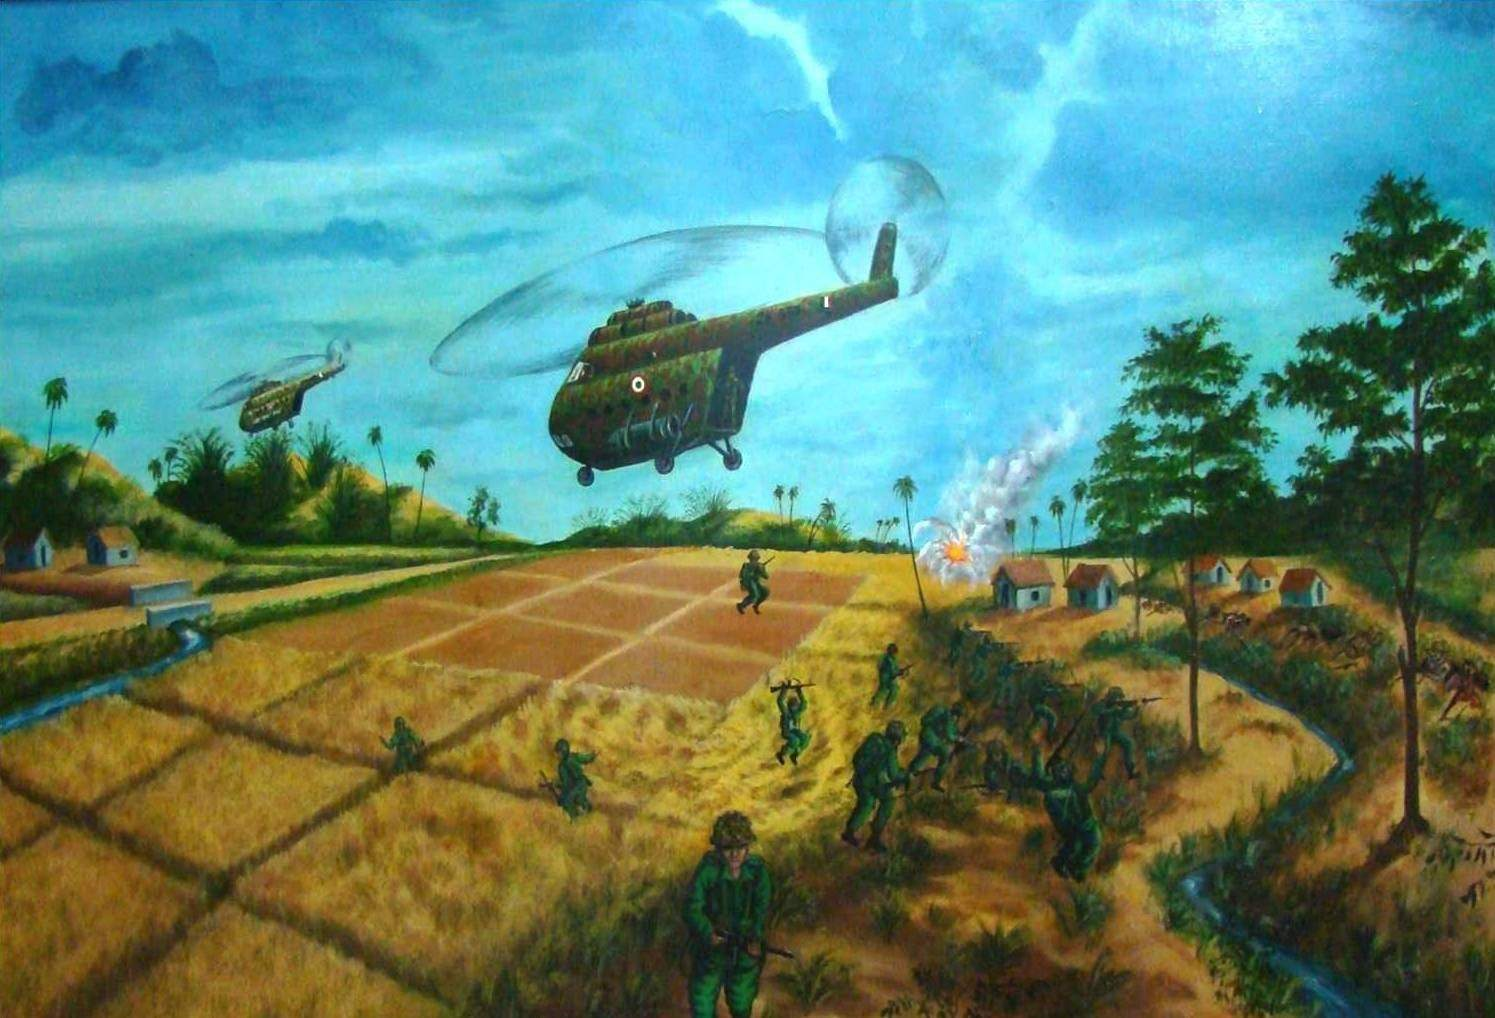 Heli landing Sylhet - 7th Dec. 1971